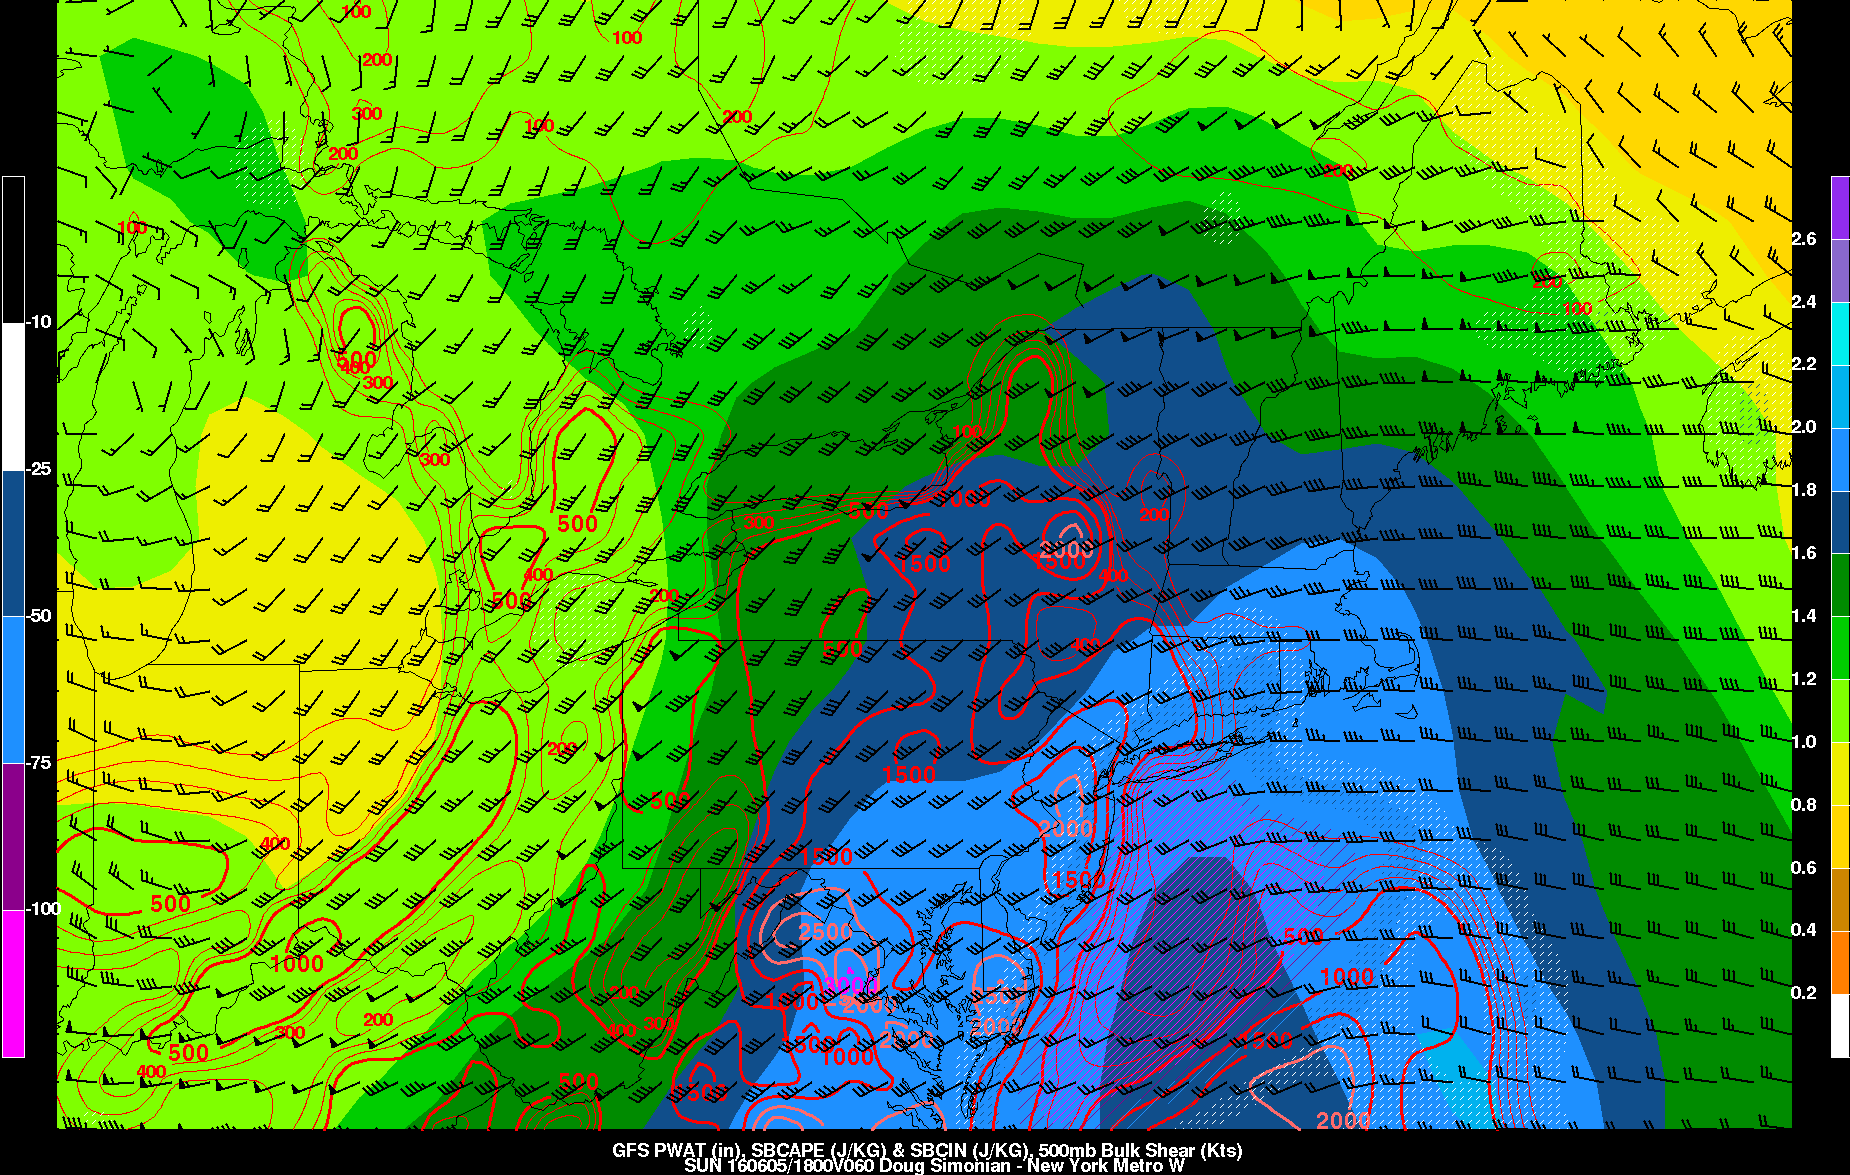 GFS showing high preipitable water values across the region with more instability southwest of New York City